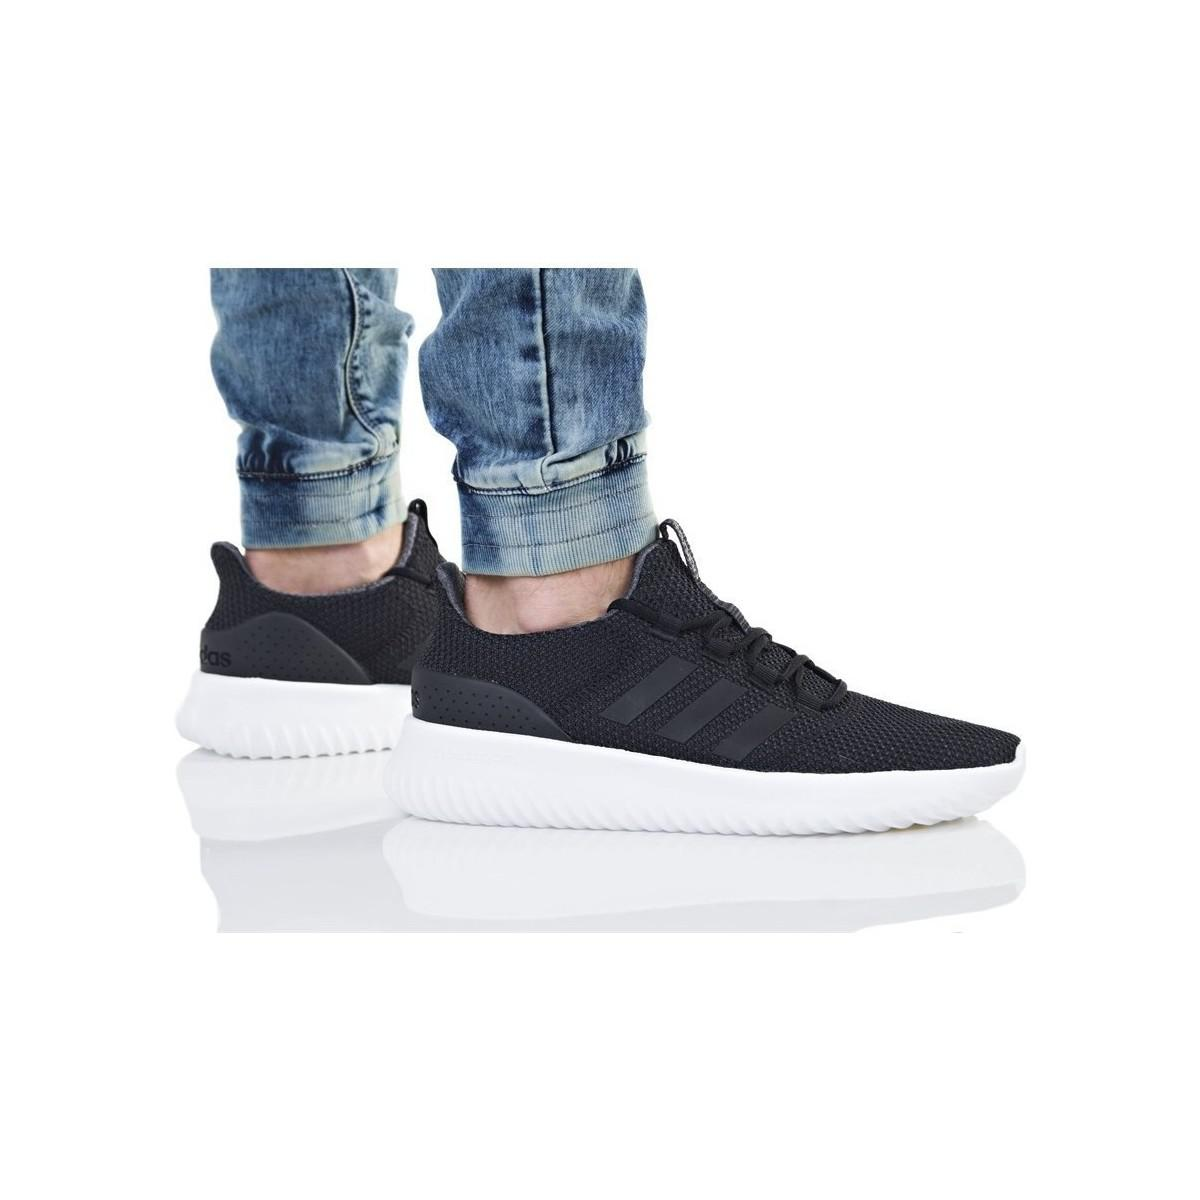 adidas Cloudfoam Ultimate Men's Shoes (trainers) In Black for Men - Save 32%